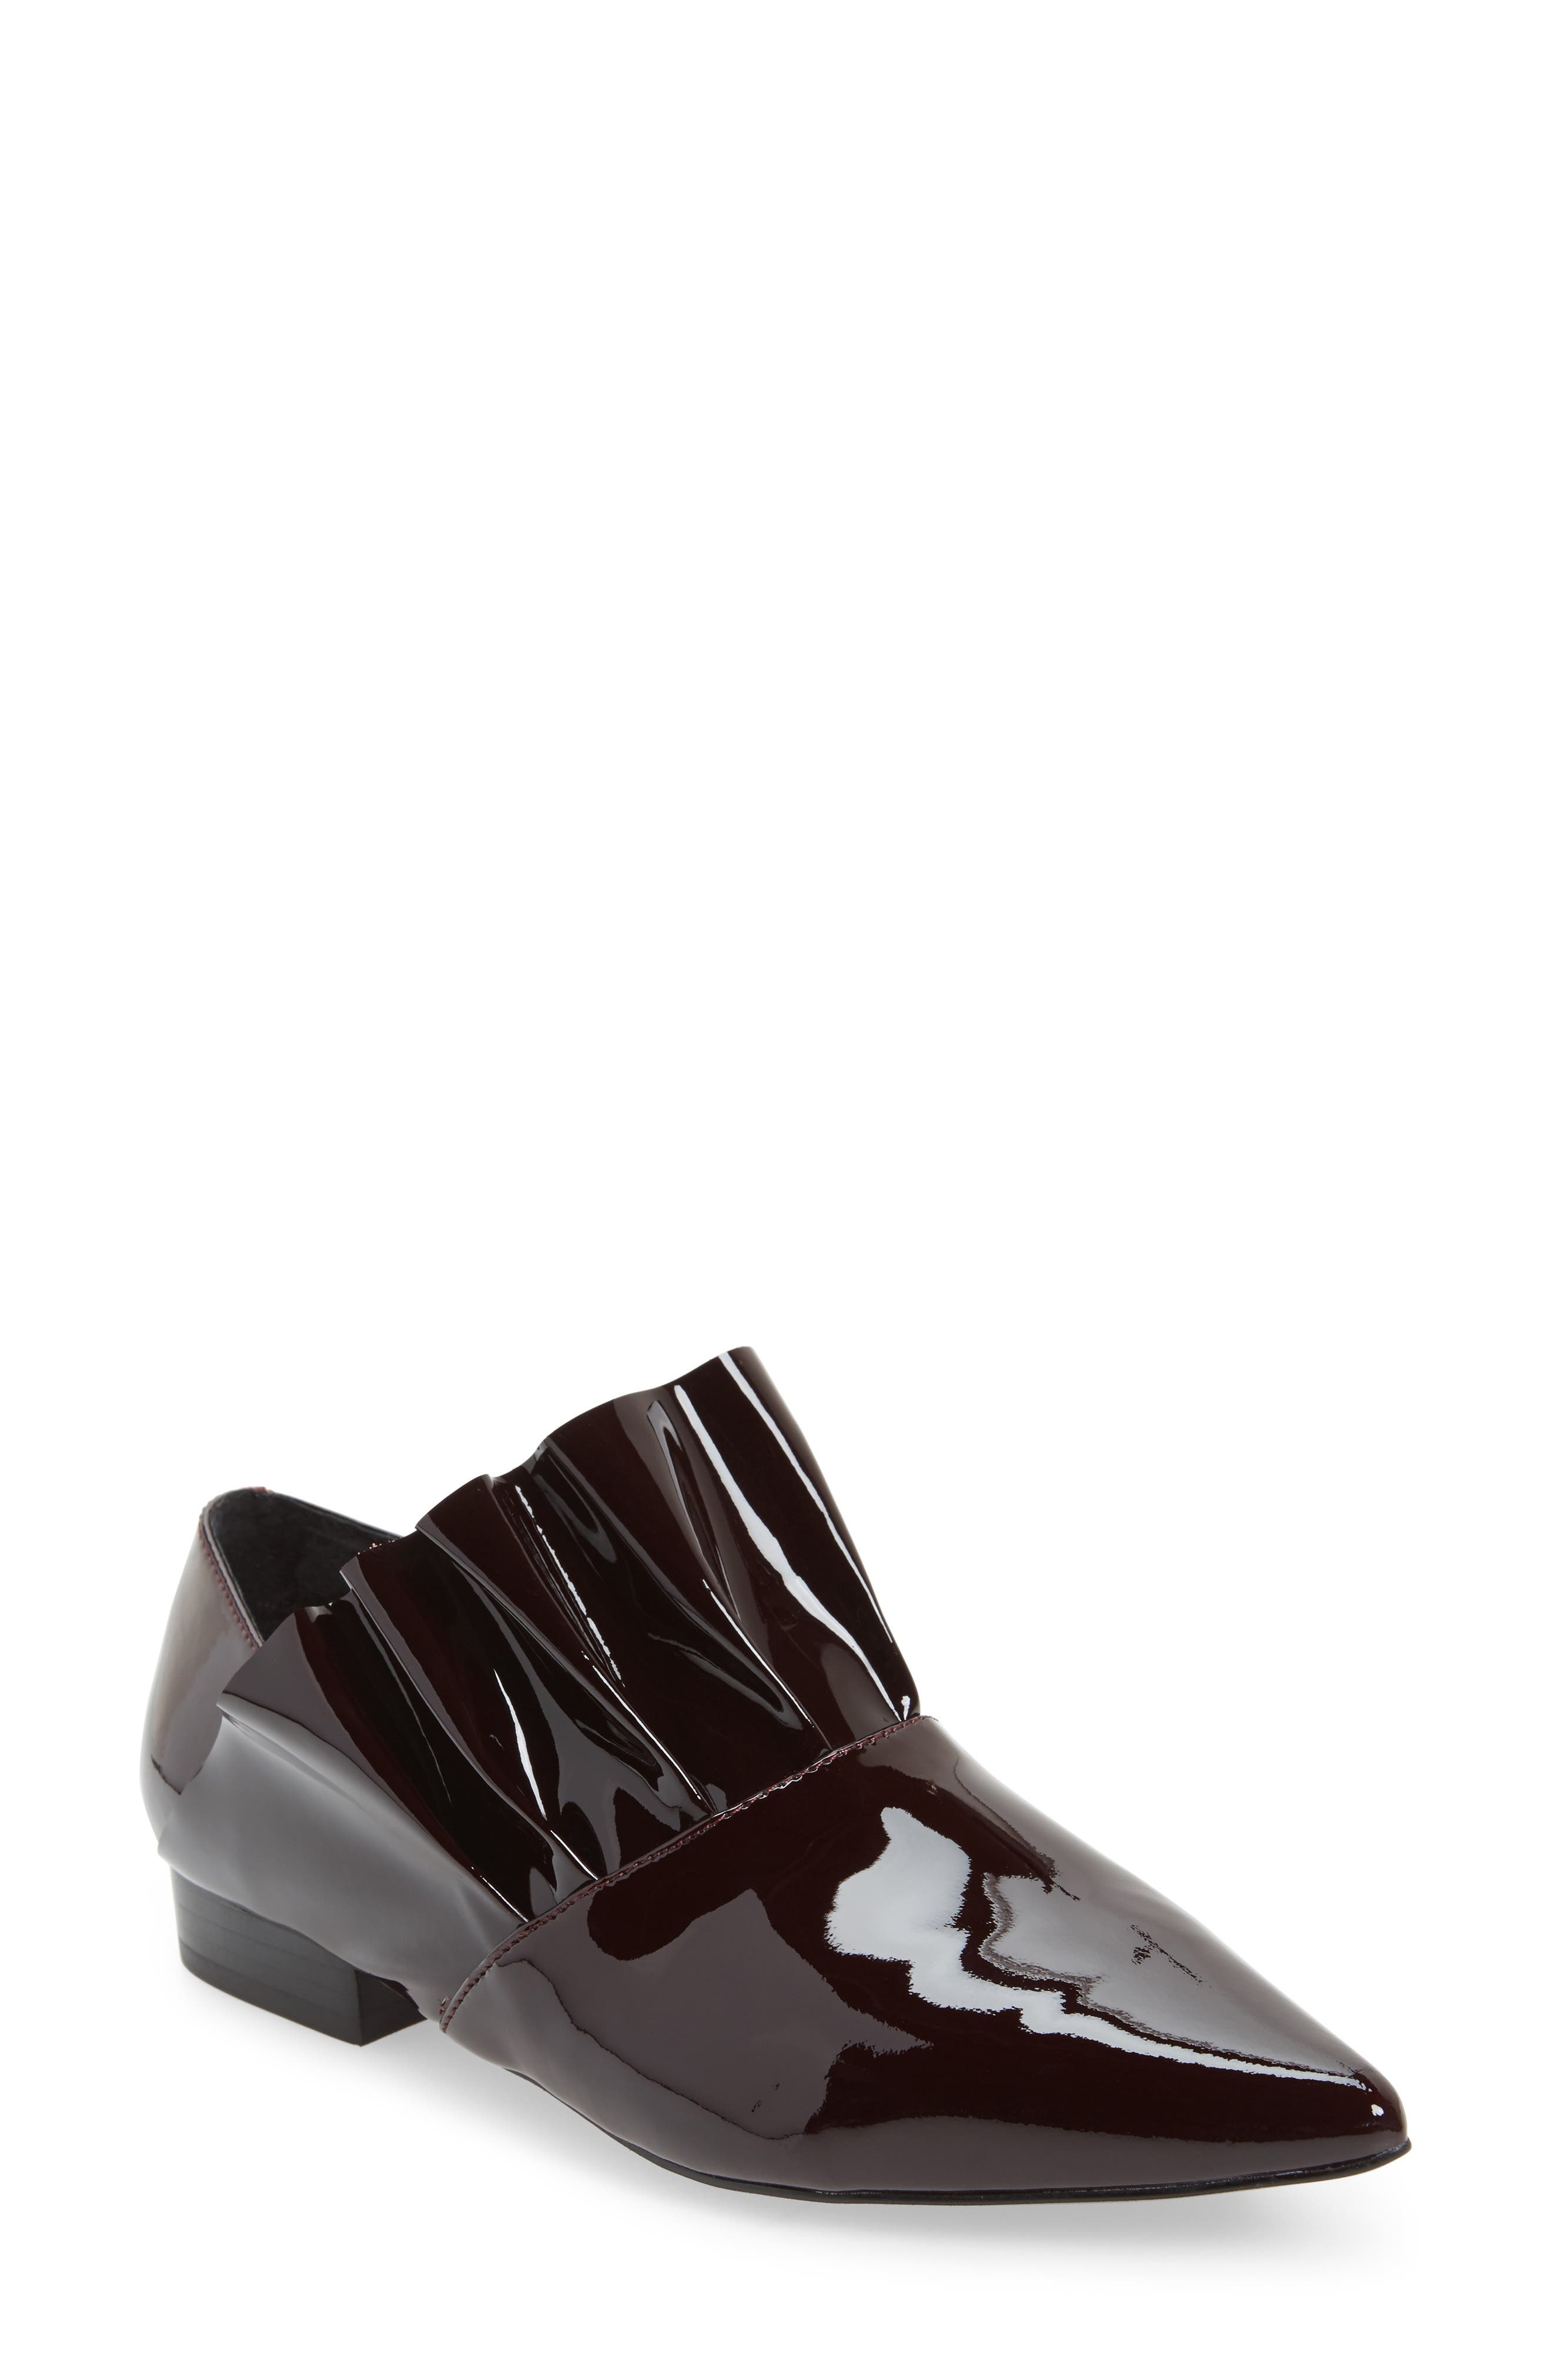 E8 by Miista Spencer Ruffle Loafer